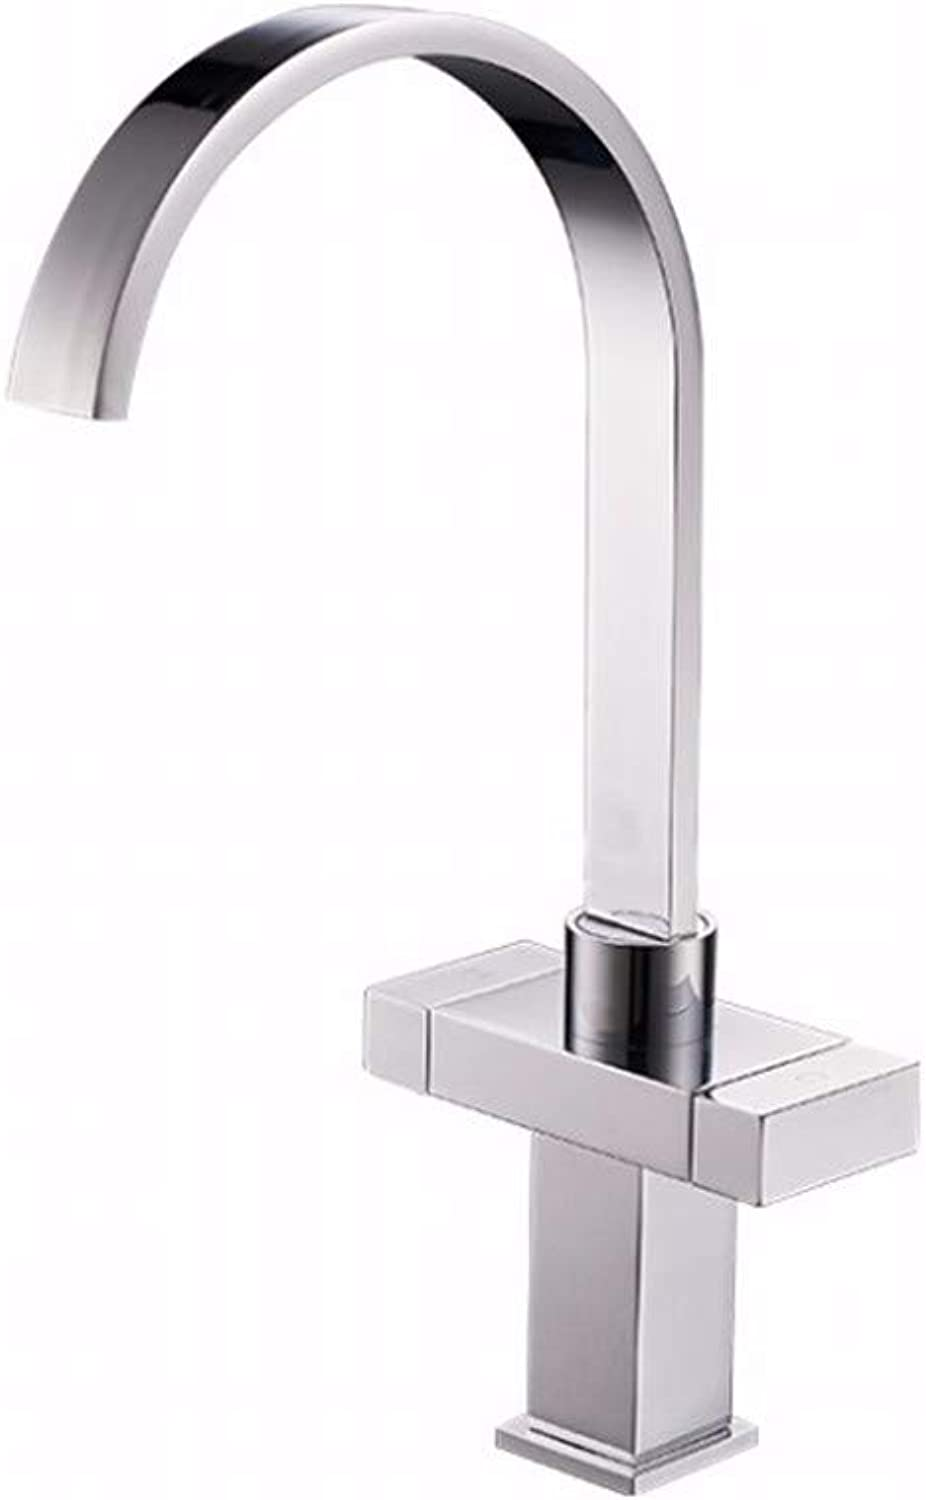 Household copper kitchen faucet square double kitchen hot and cold water faucet